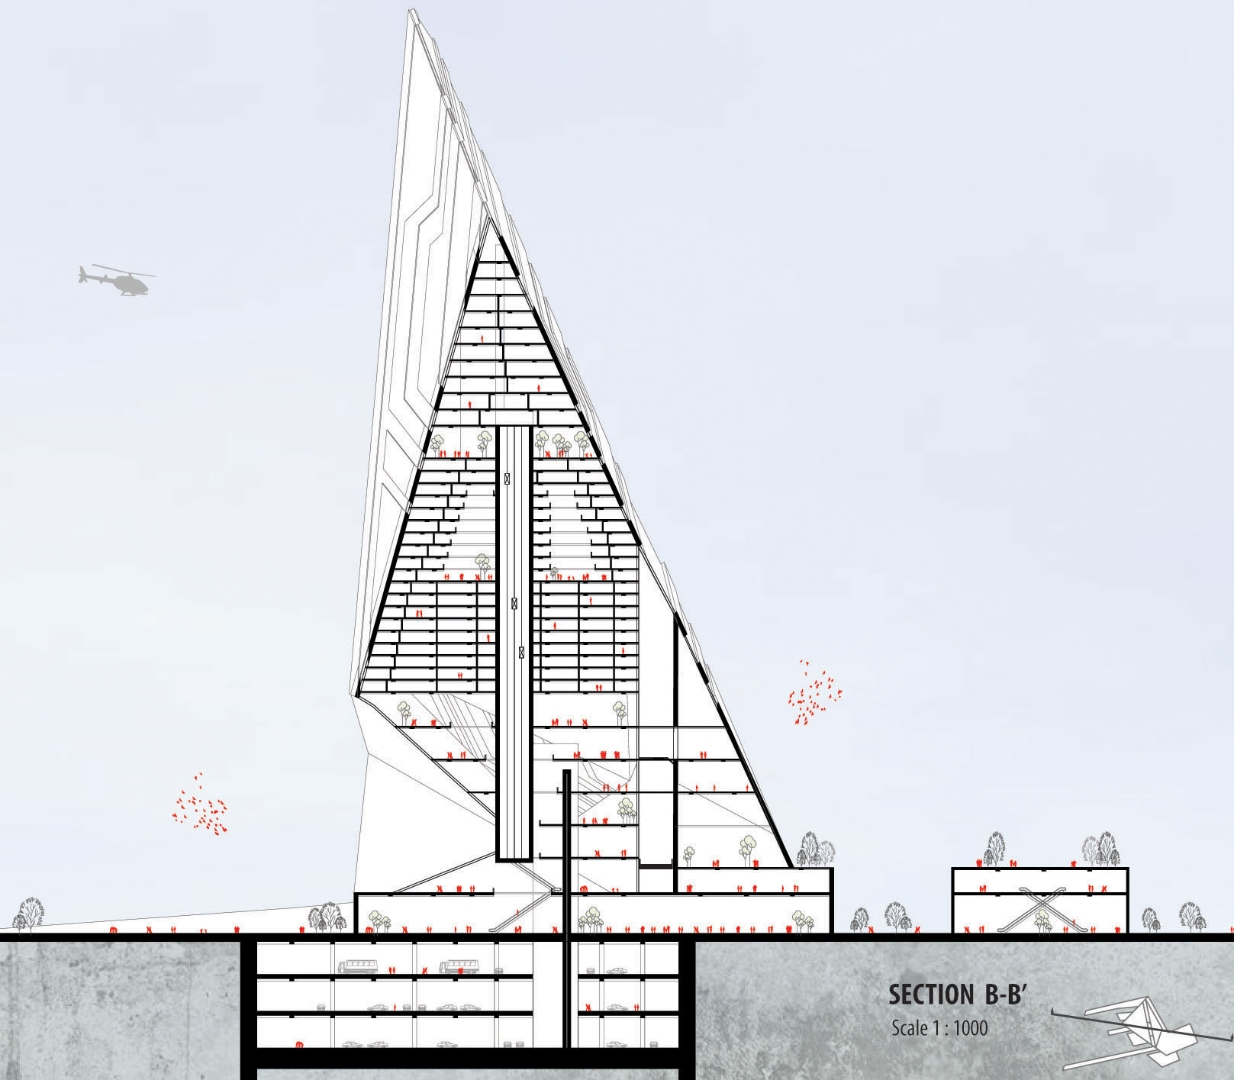 Enlarge Photo: The Possibility of an Island: Designing the New Macau Waterfront 14